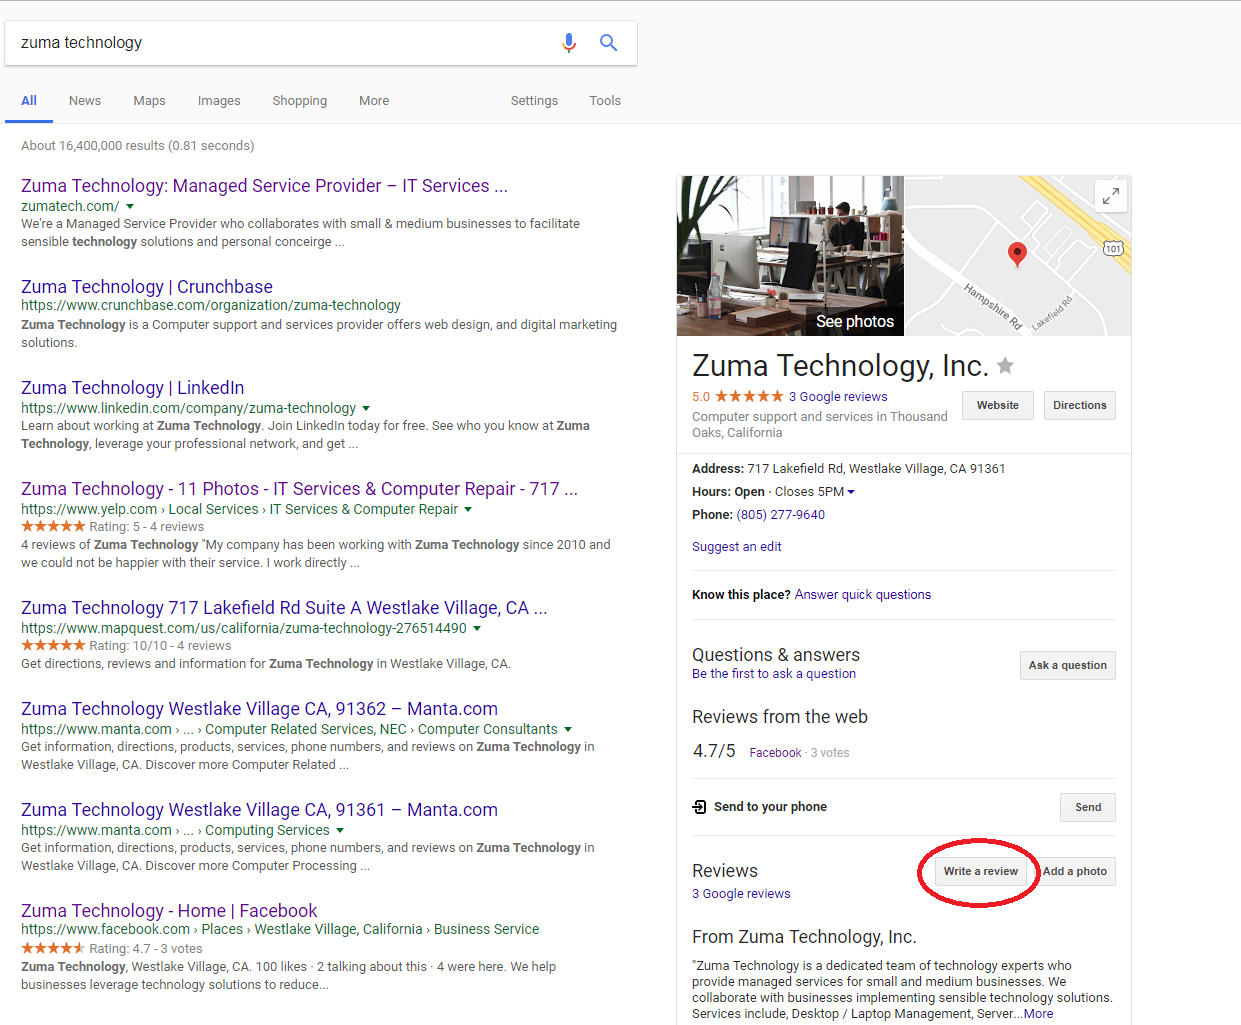 An image of Google's search page after searching for a business